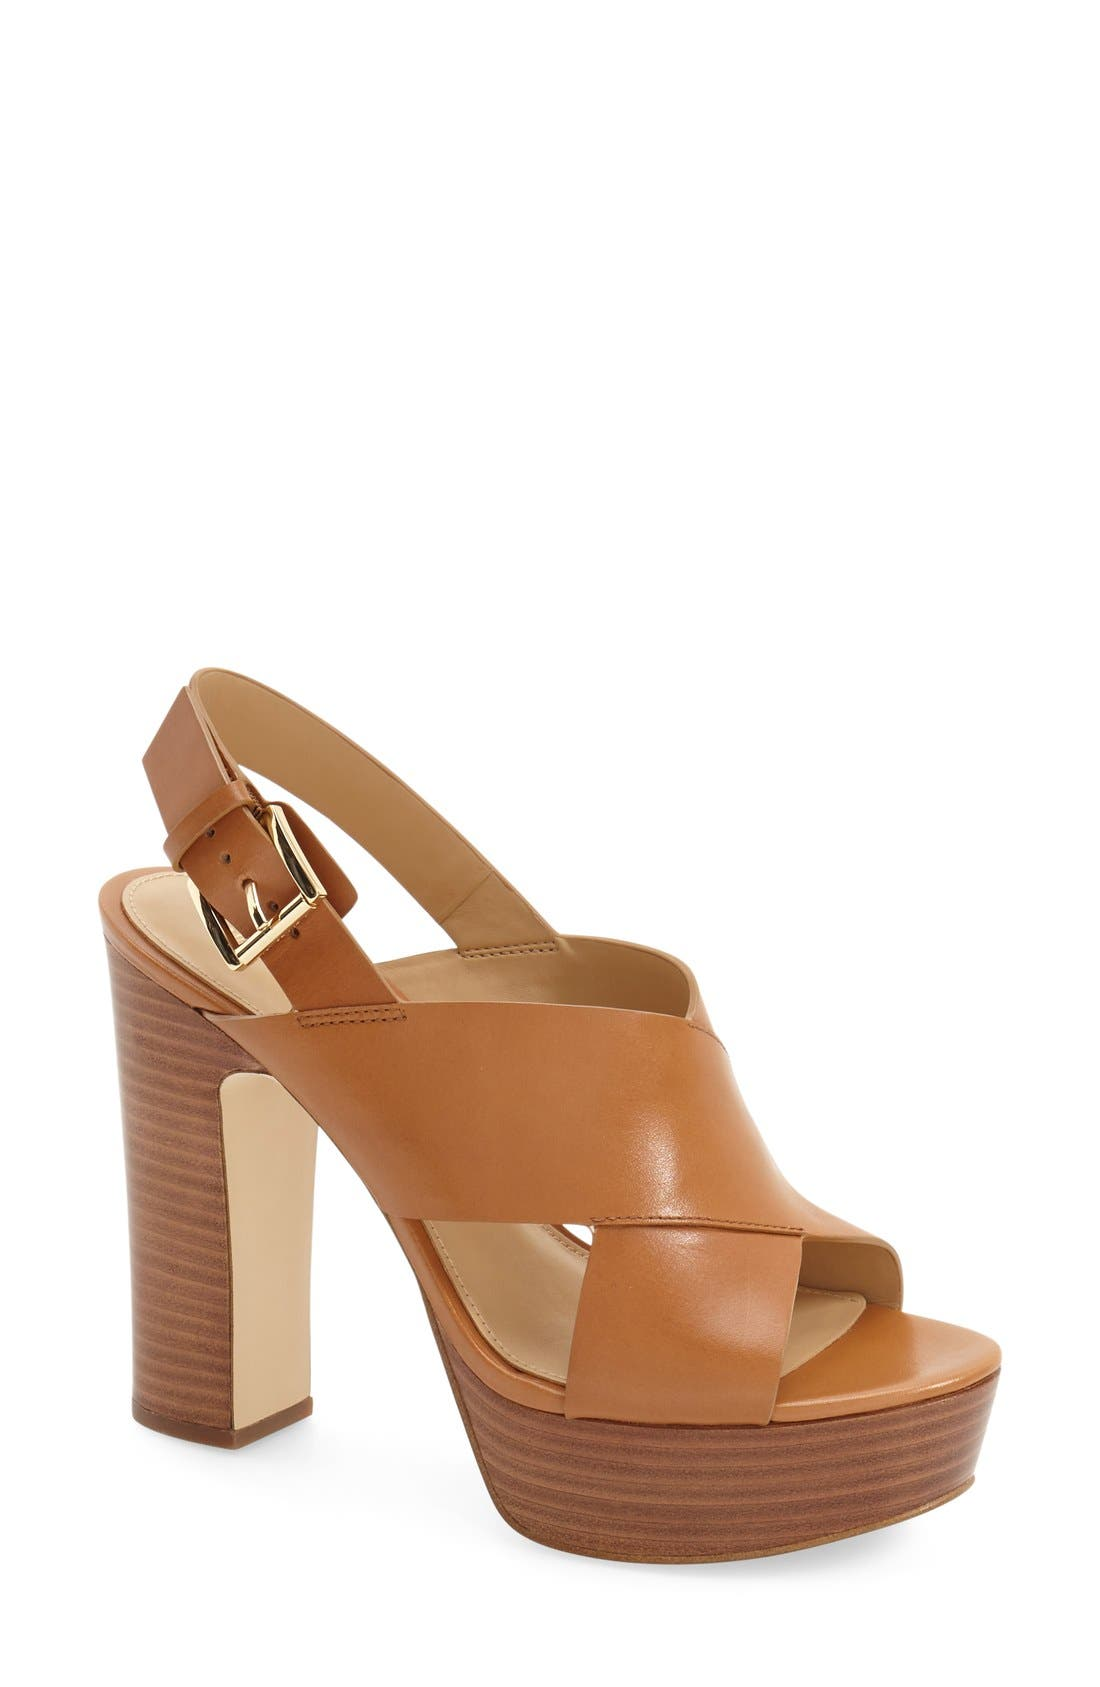 Alternate Image 1 Selected - MICHAEL Michael Kors 'Marina' Slingback Platform Sandal (Women)